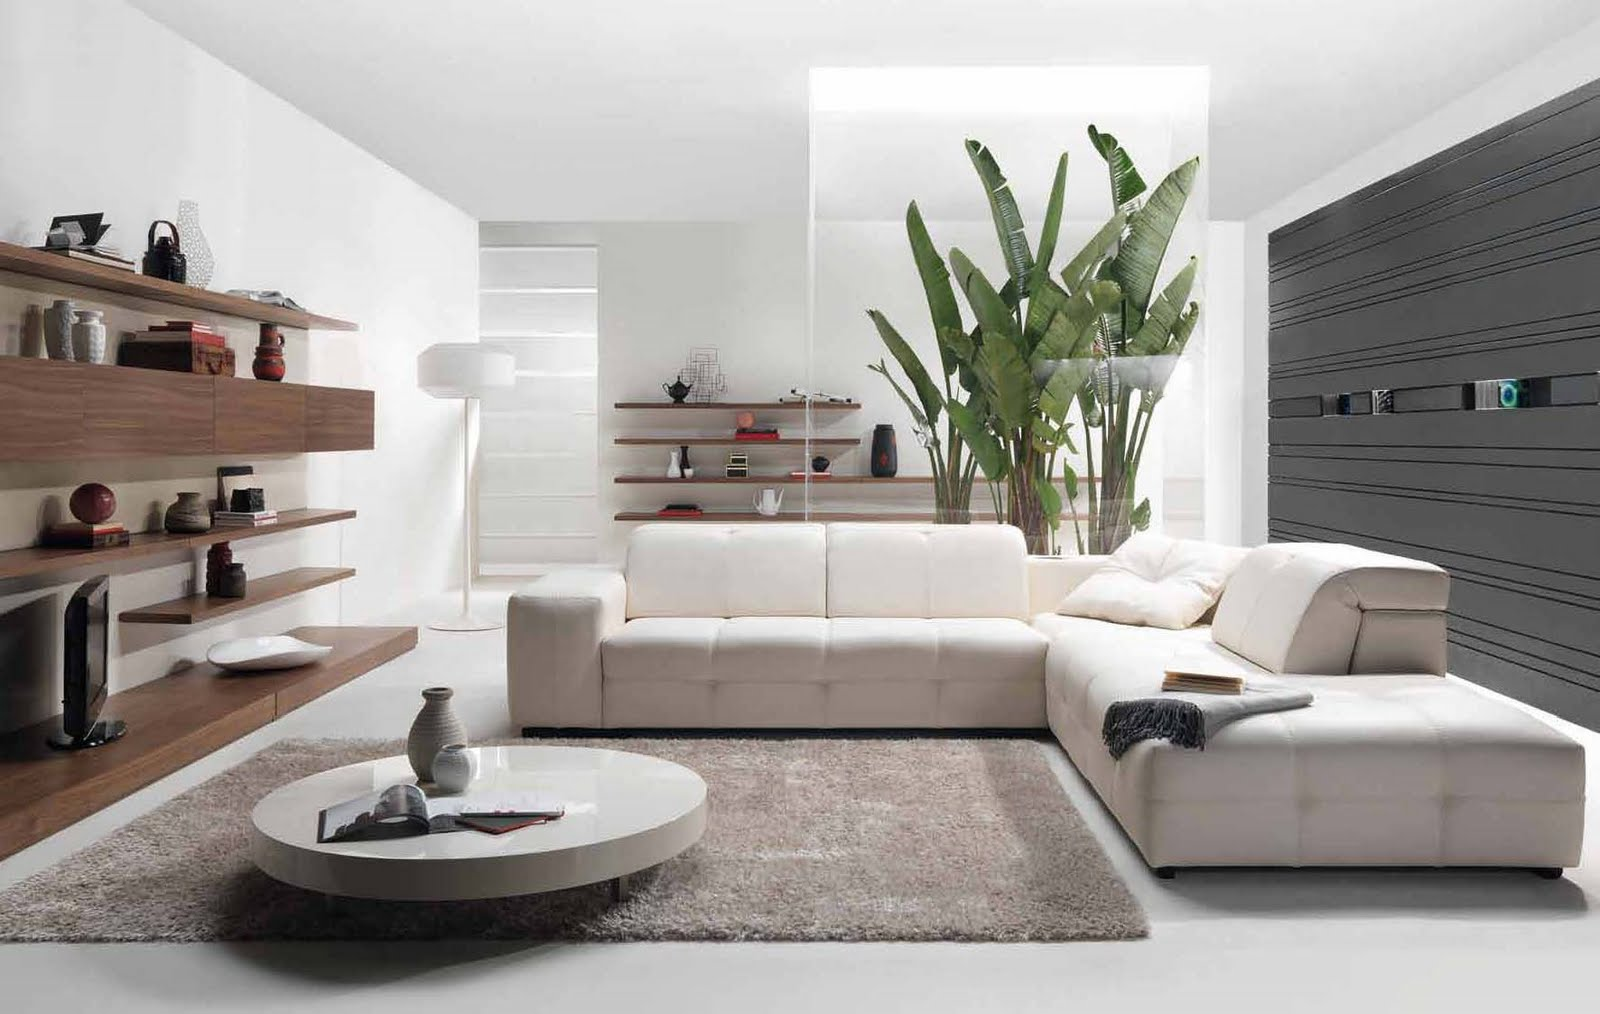 Future house design modern living room interior design for New living room ideas